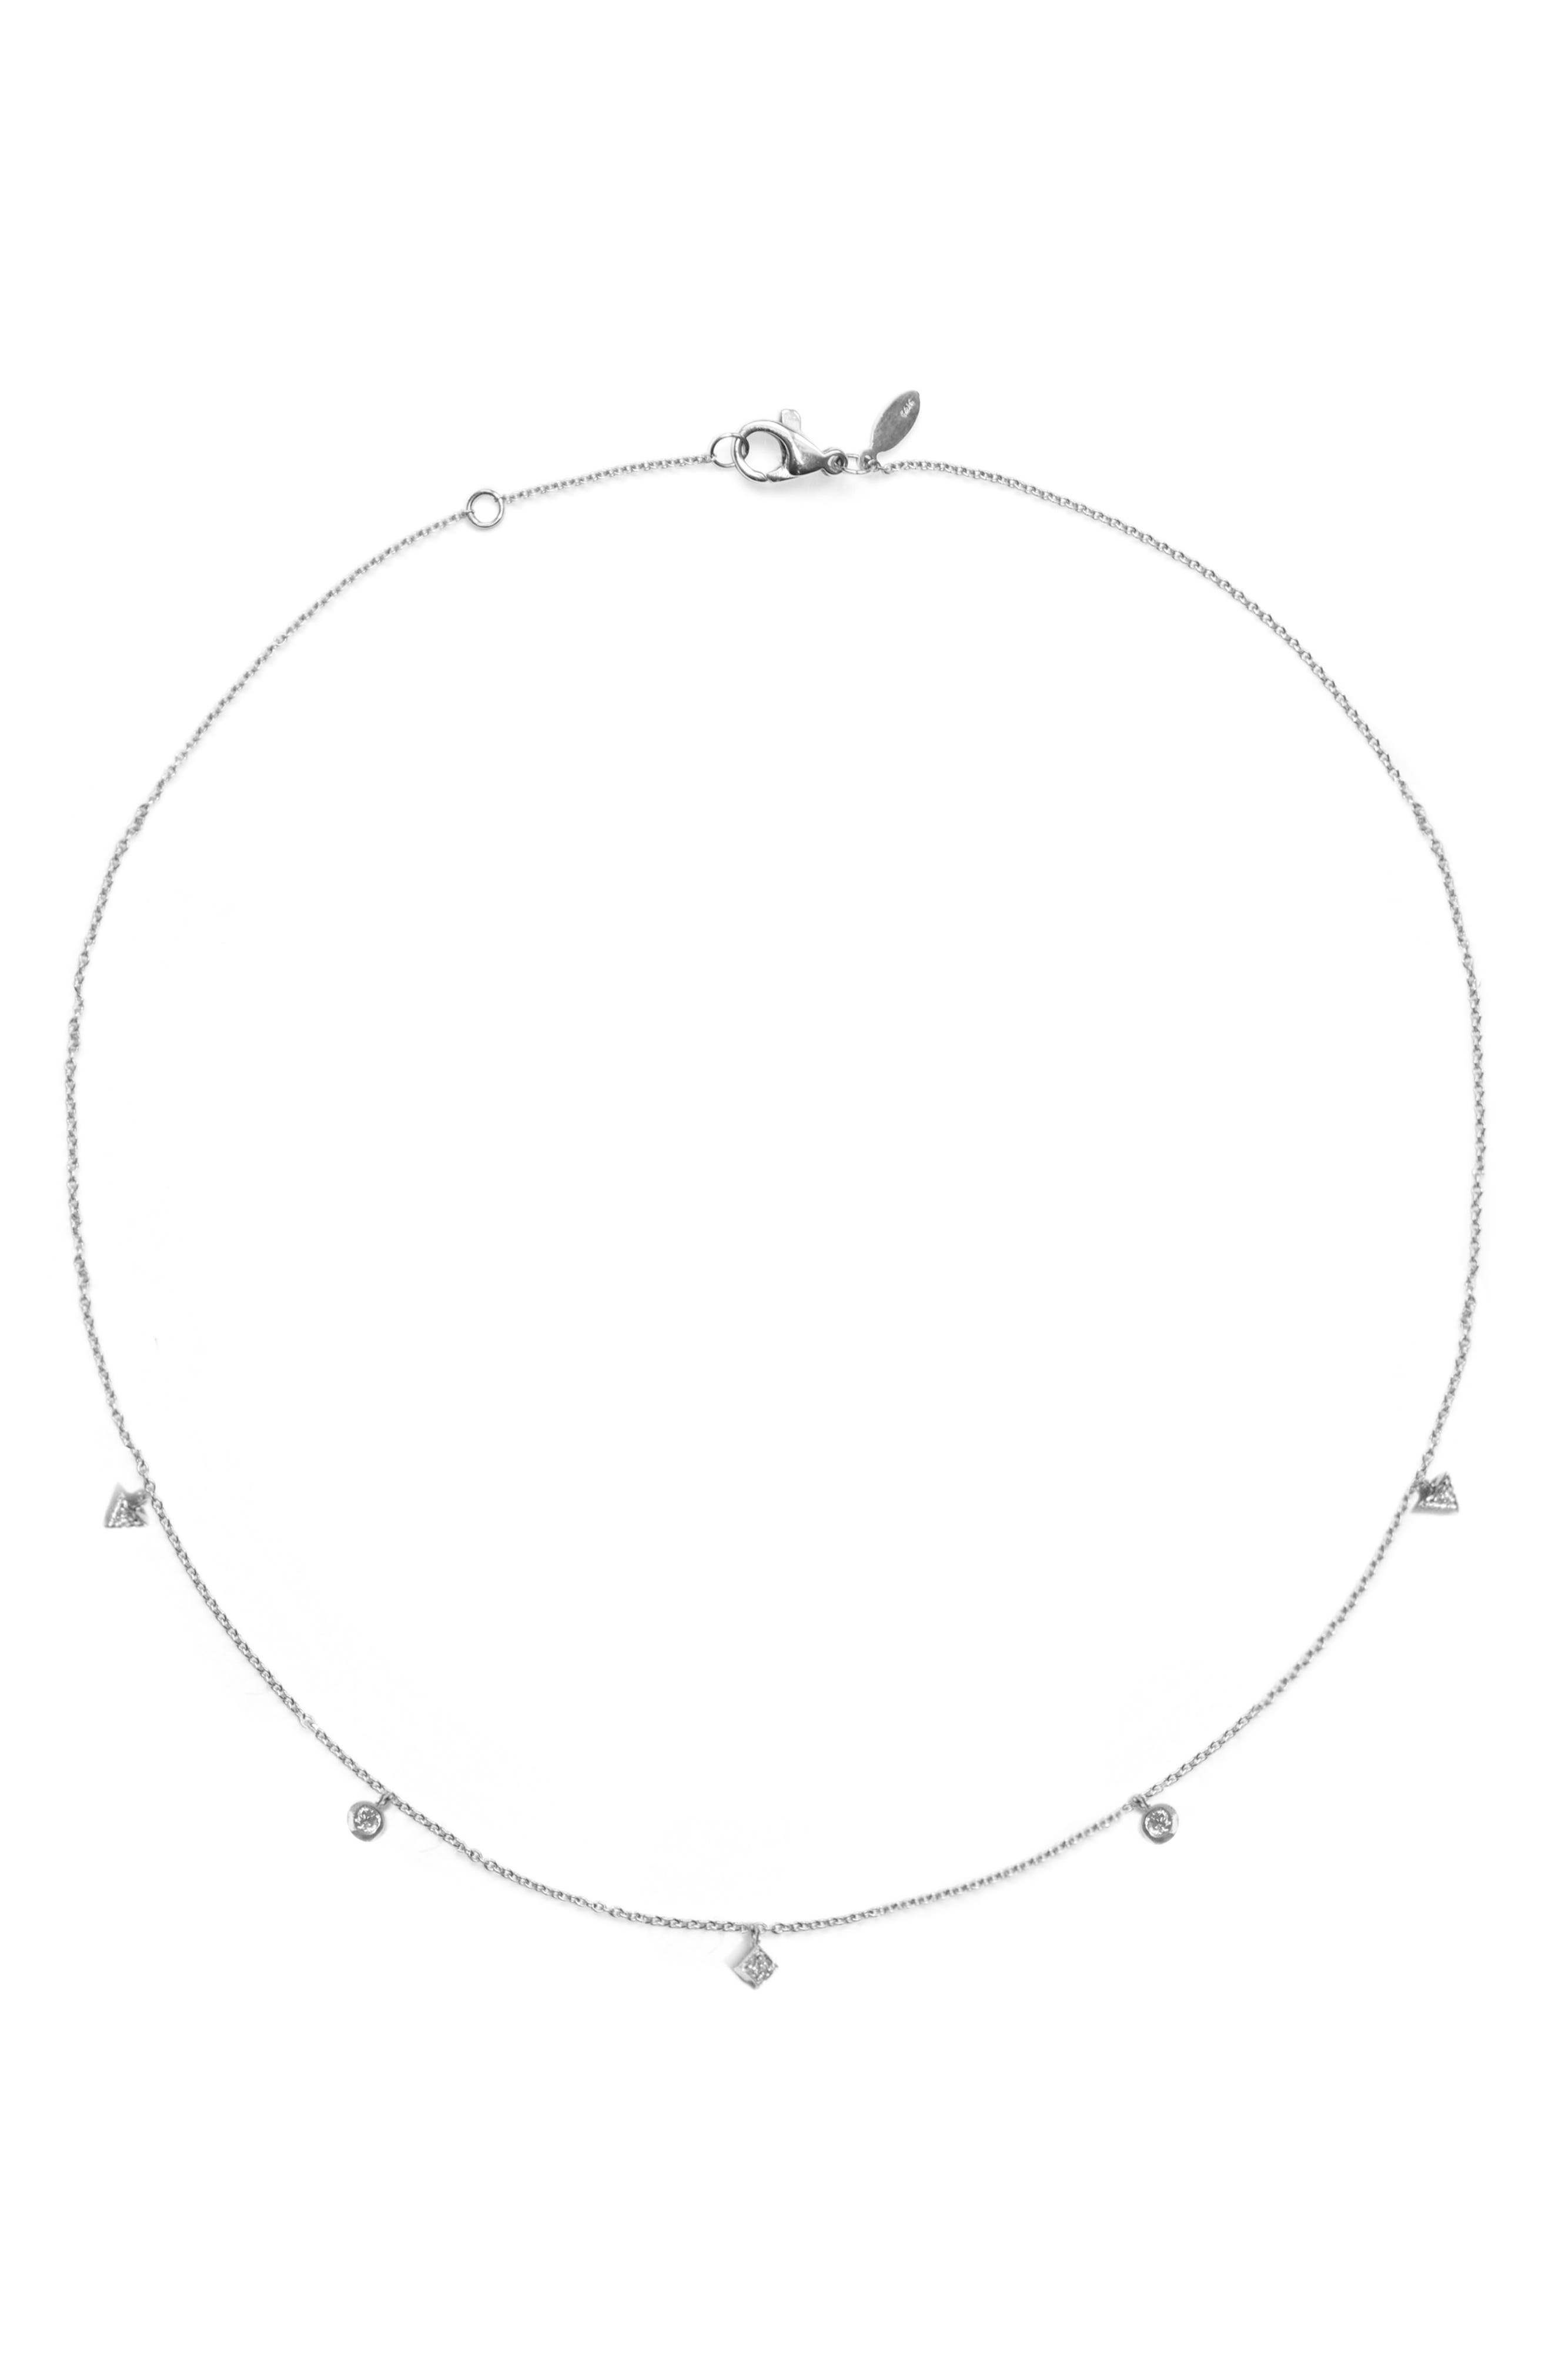 Cleo Dangling Shapes Necklace,                             Main thumbnail 1, color,                             SILVER